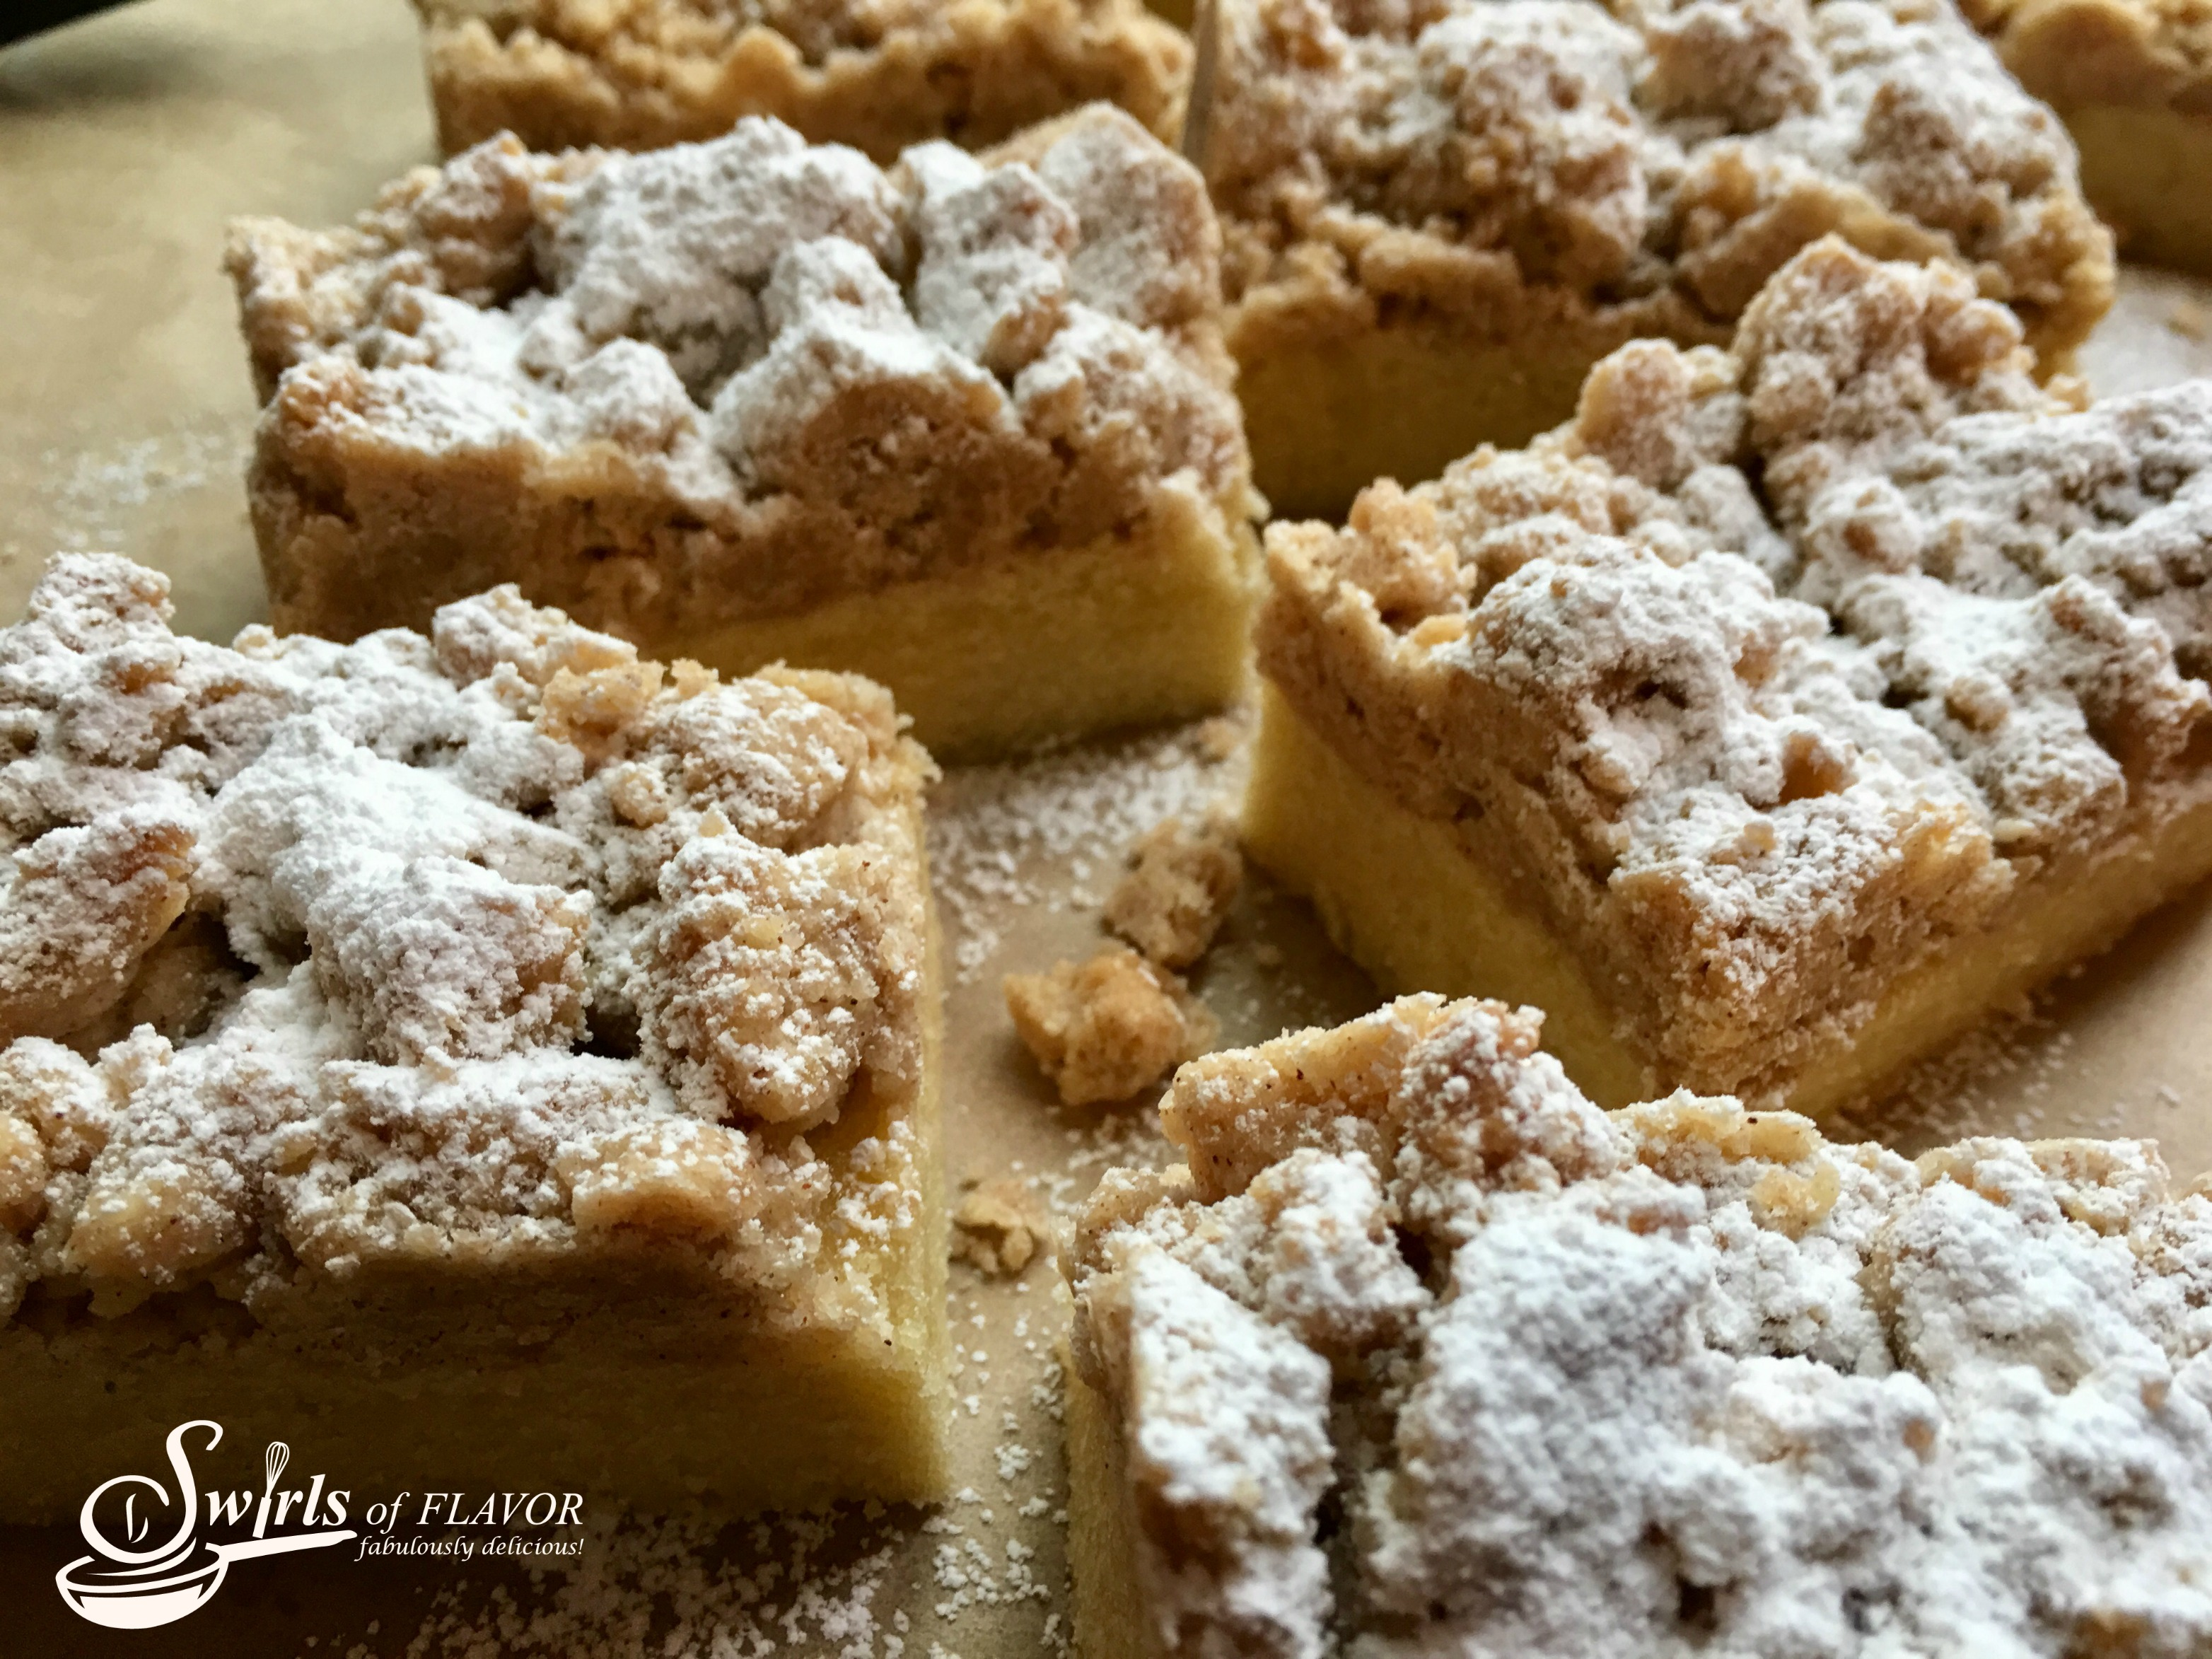 Every bite of Best Ever Crumb Cake is heavenly when a rich vanilla-scented cake is topped with buttery cinnamon crumbs dusted with powdered sugar. All it takes are simple basic ingredients from your fridge and pantry for this easy recipe that's perfect for brunch, breakfast and dessert! #easyrecipe #baking #fromscratch #homemade #crumbcake #brunch #breakfast #dessert #coffeecake #swirlsofflavor #holiday #entertaining